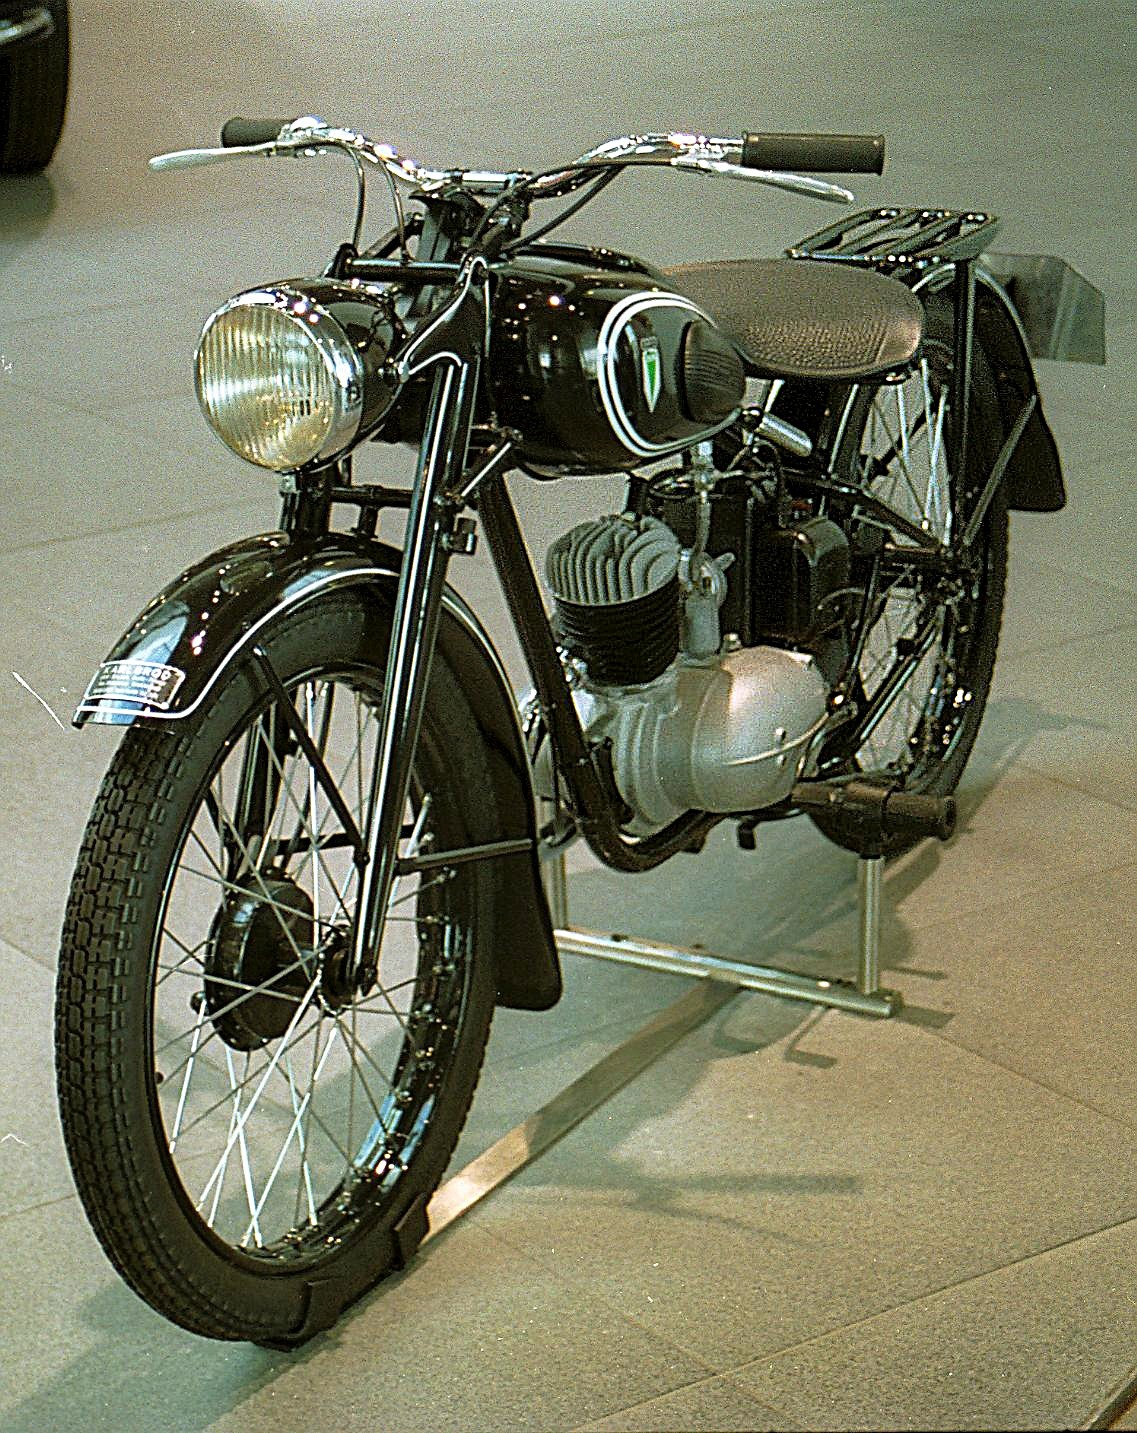 Dkw rt 125 wikipedia for Motor harley davidson museum